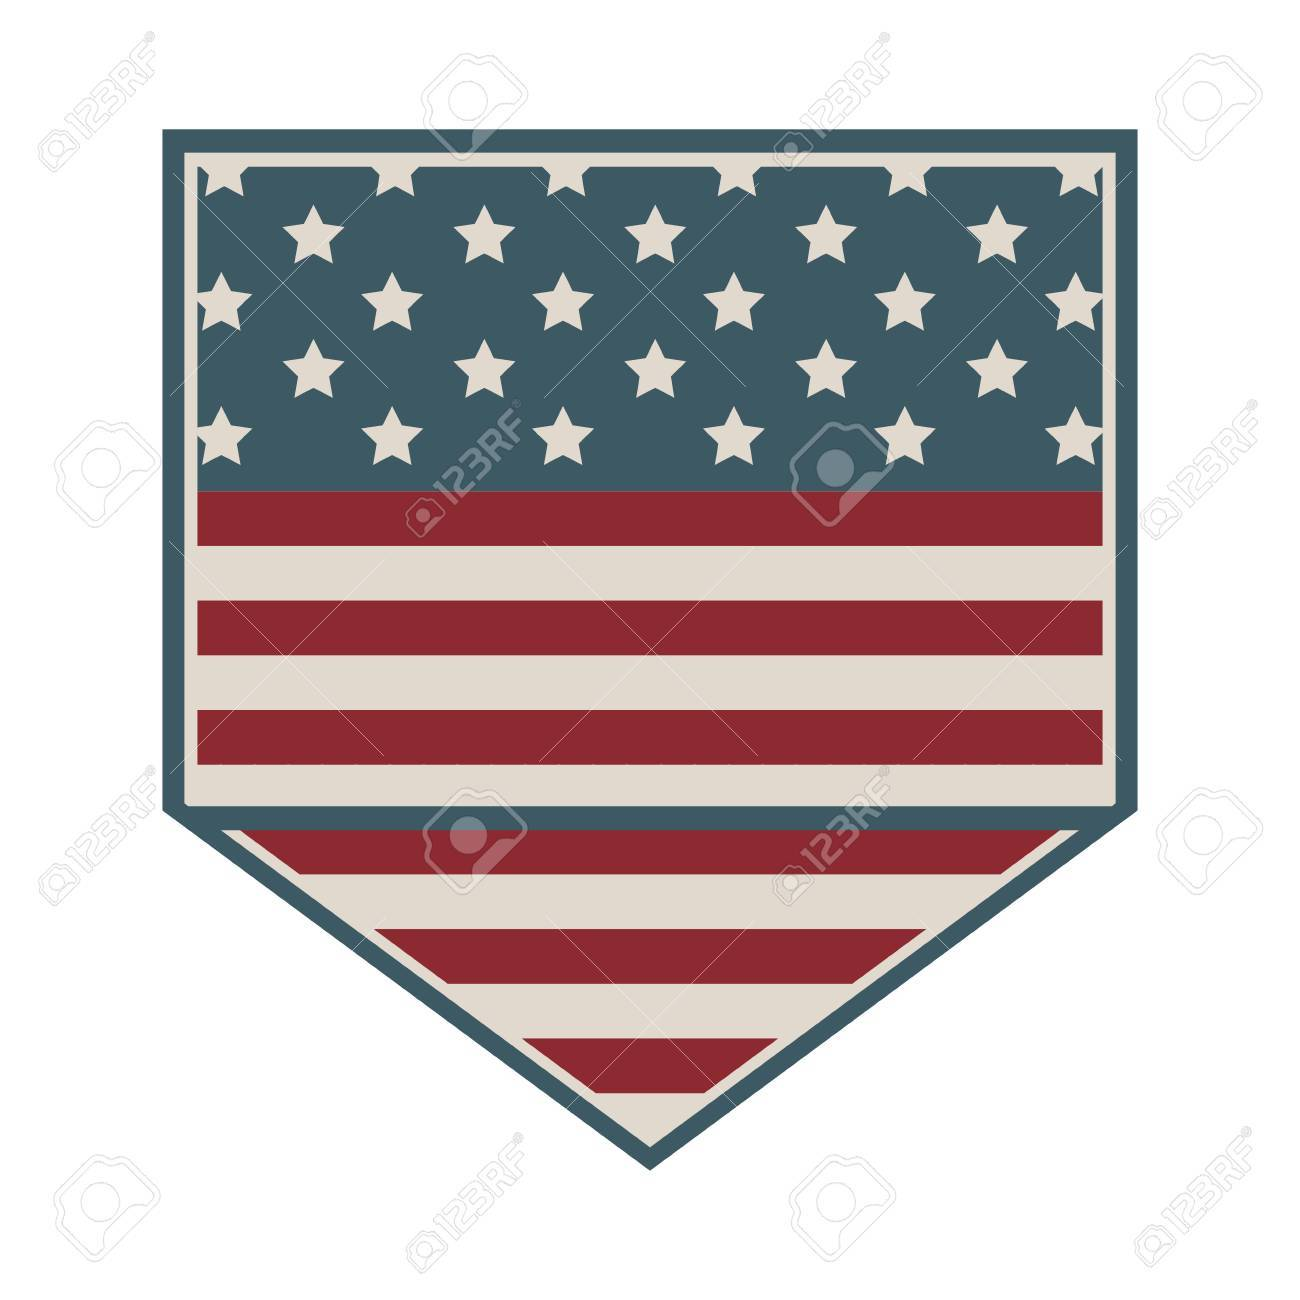 square shape of shield with american flag icon vector illustration - 68428959